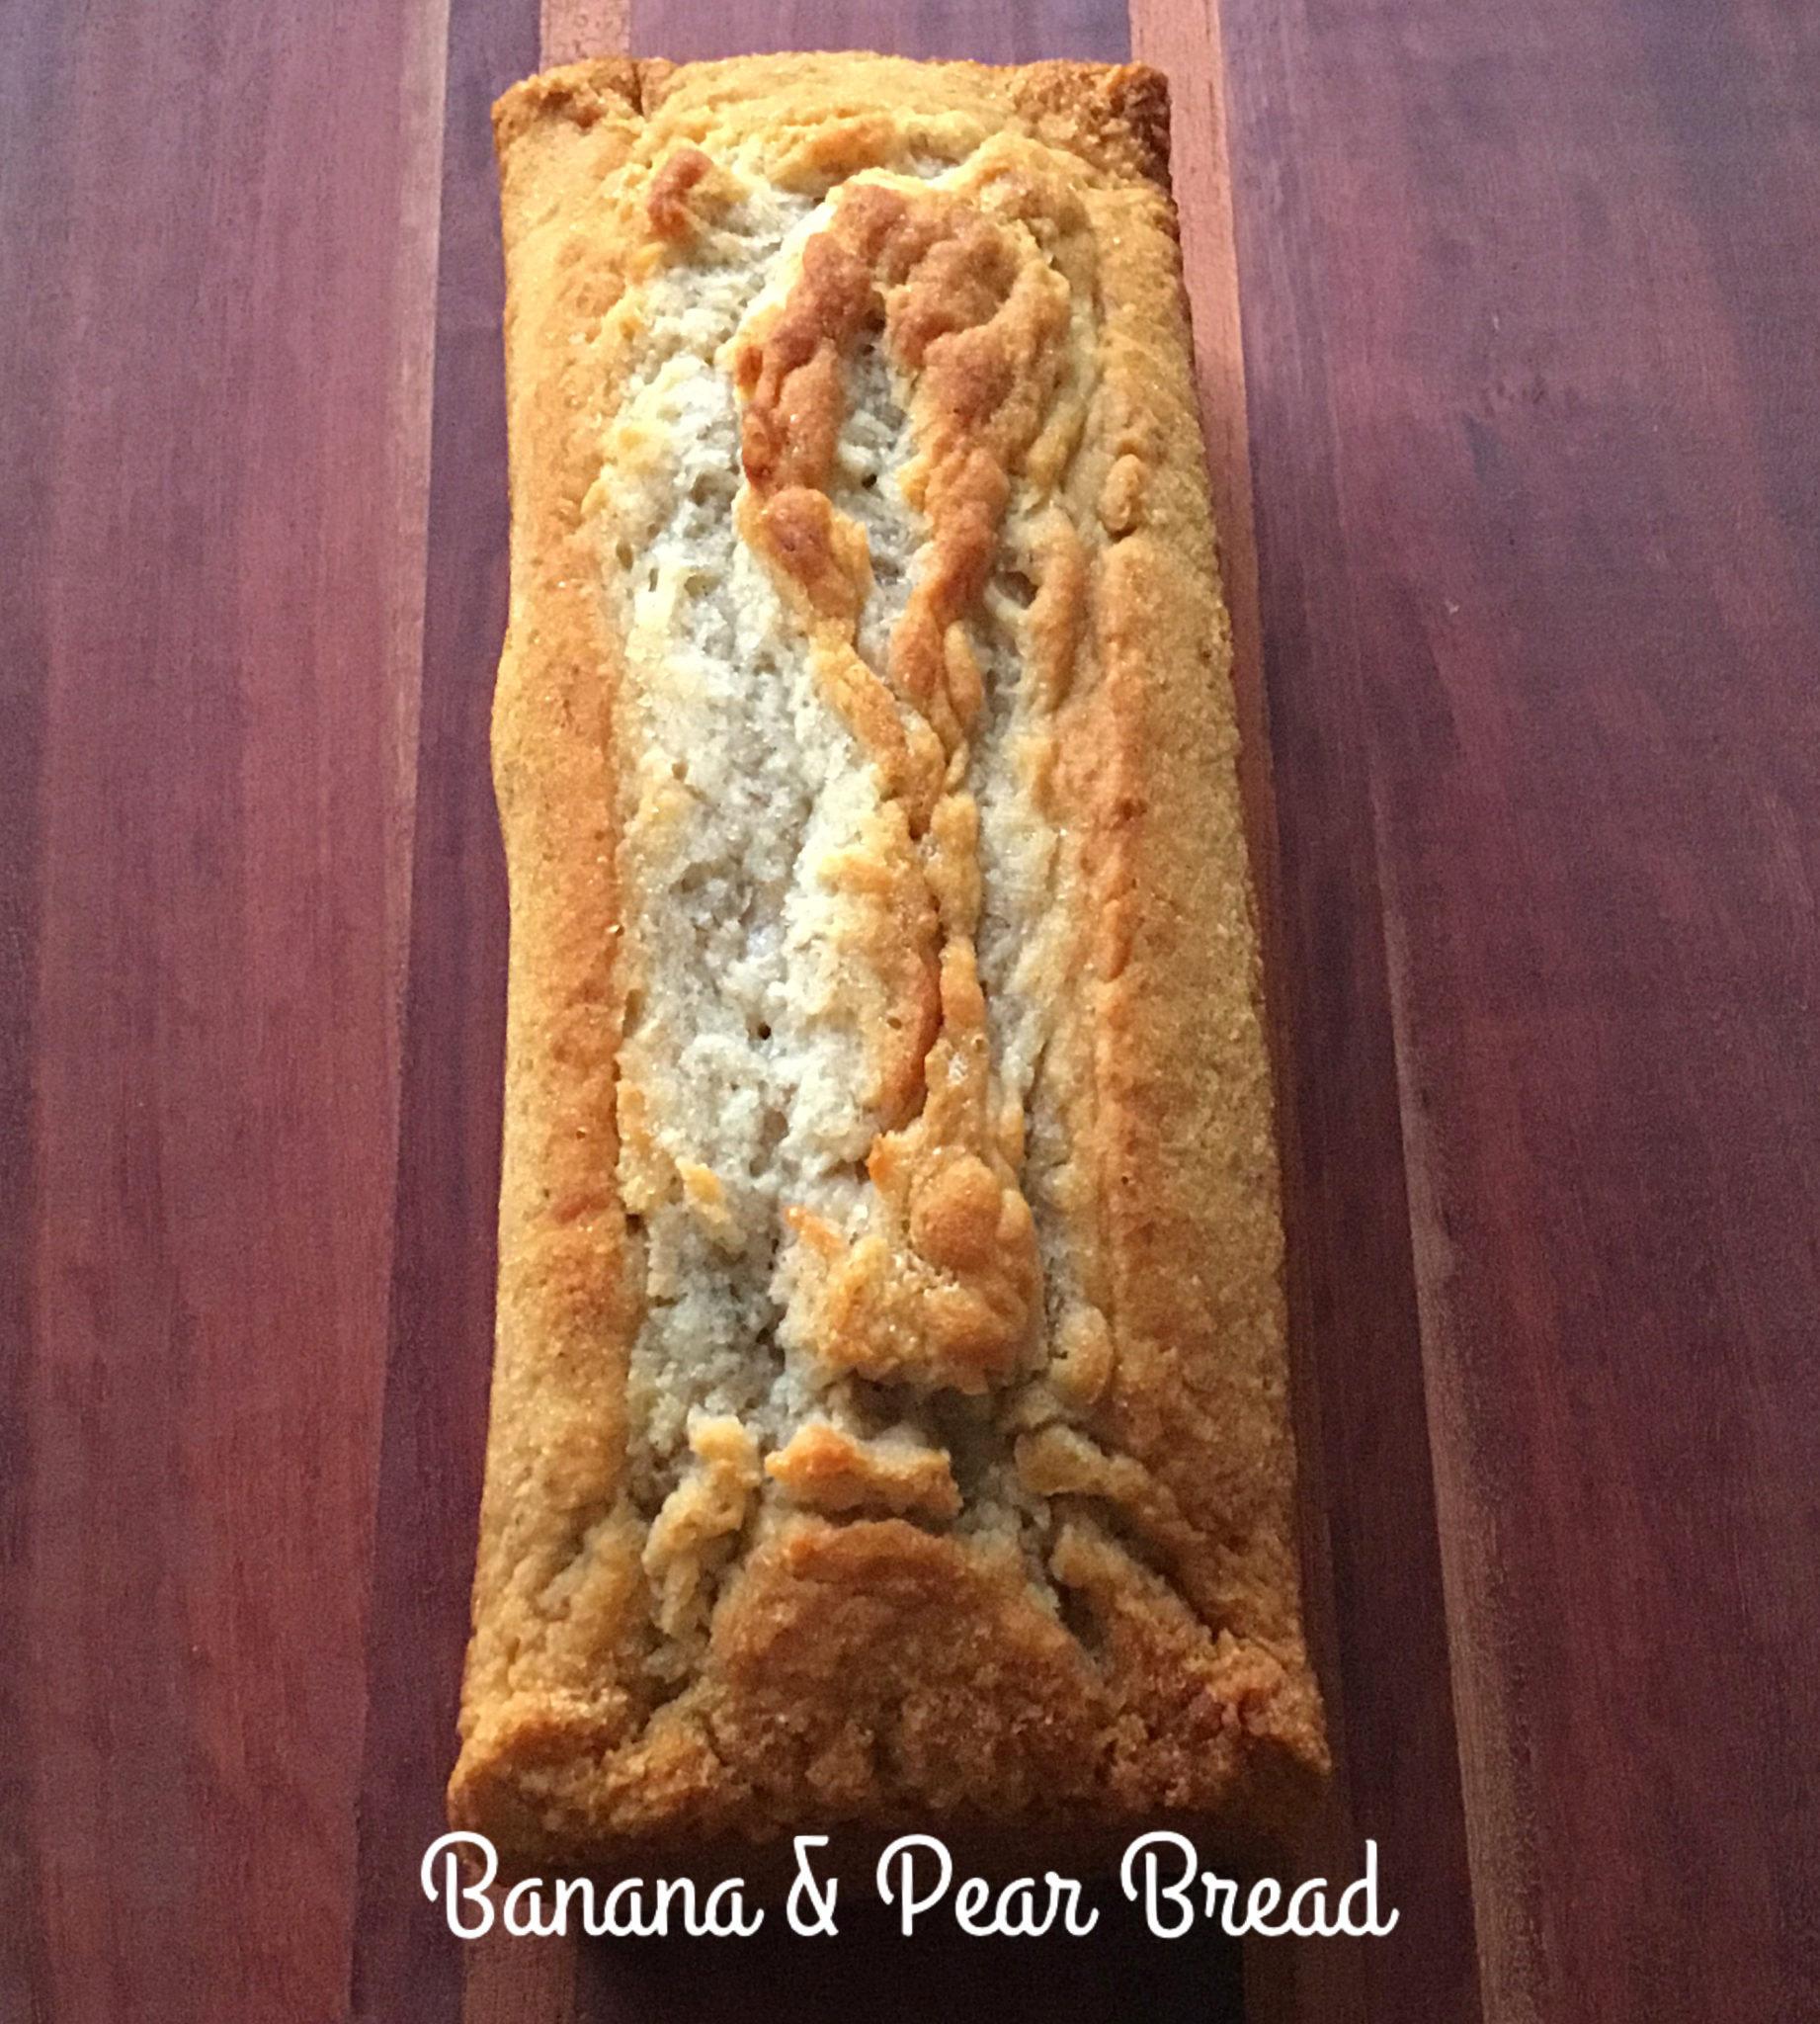 Photo of Banana and Pear Bread - Whole Food Plant Based on a brown cutting board